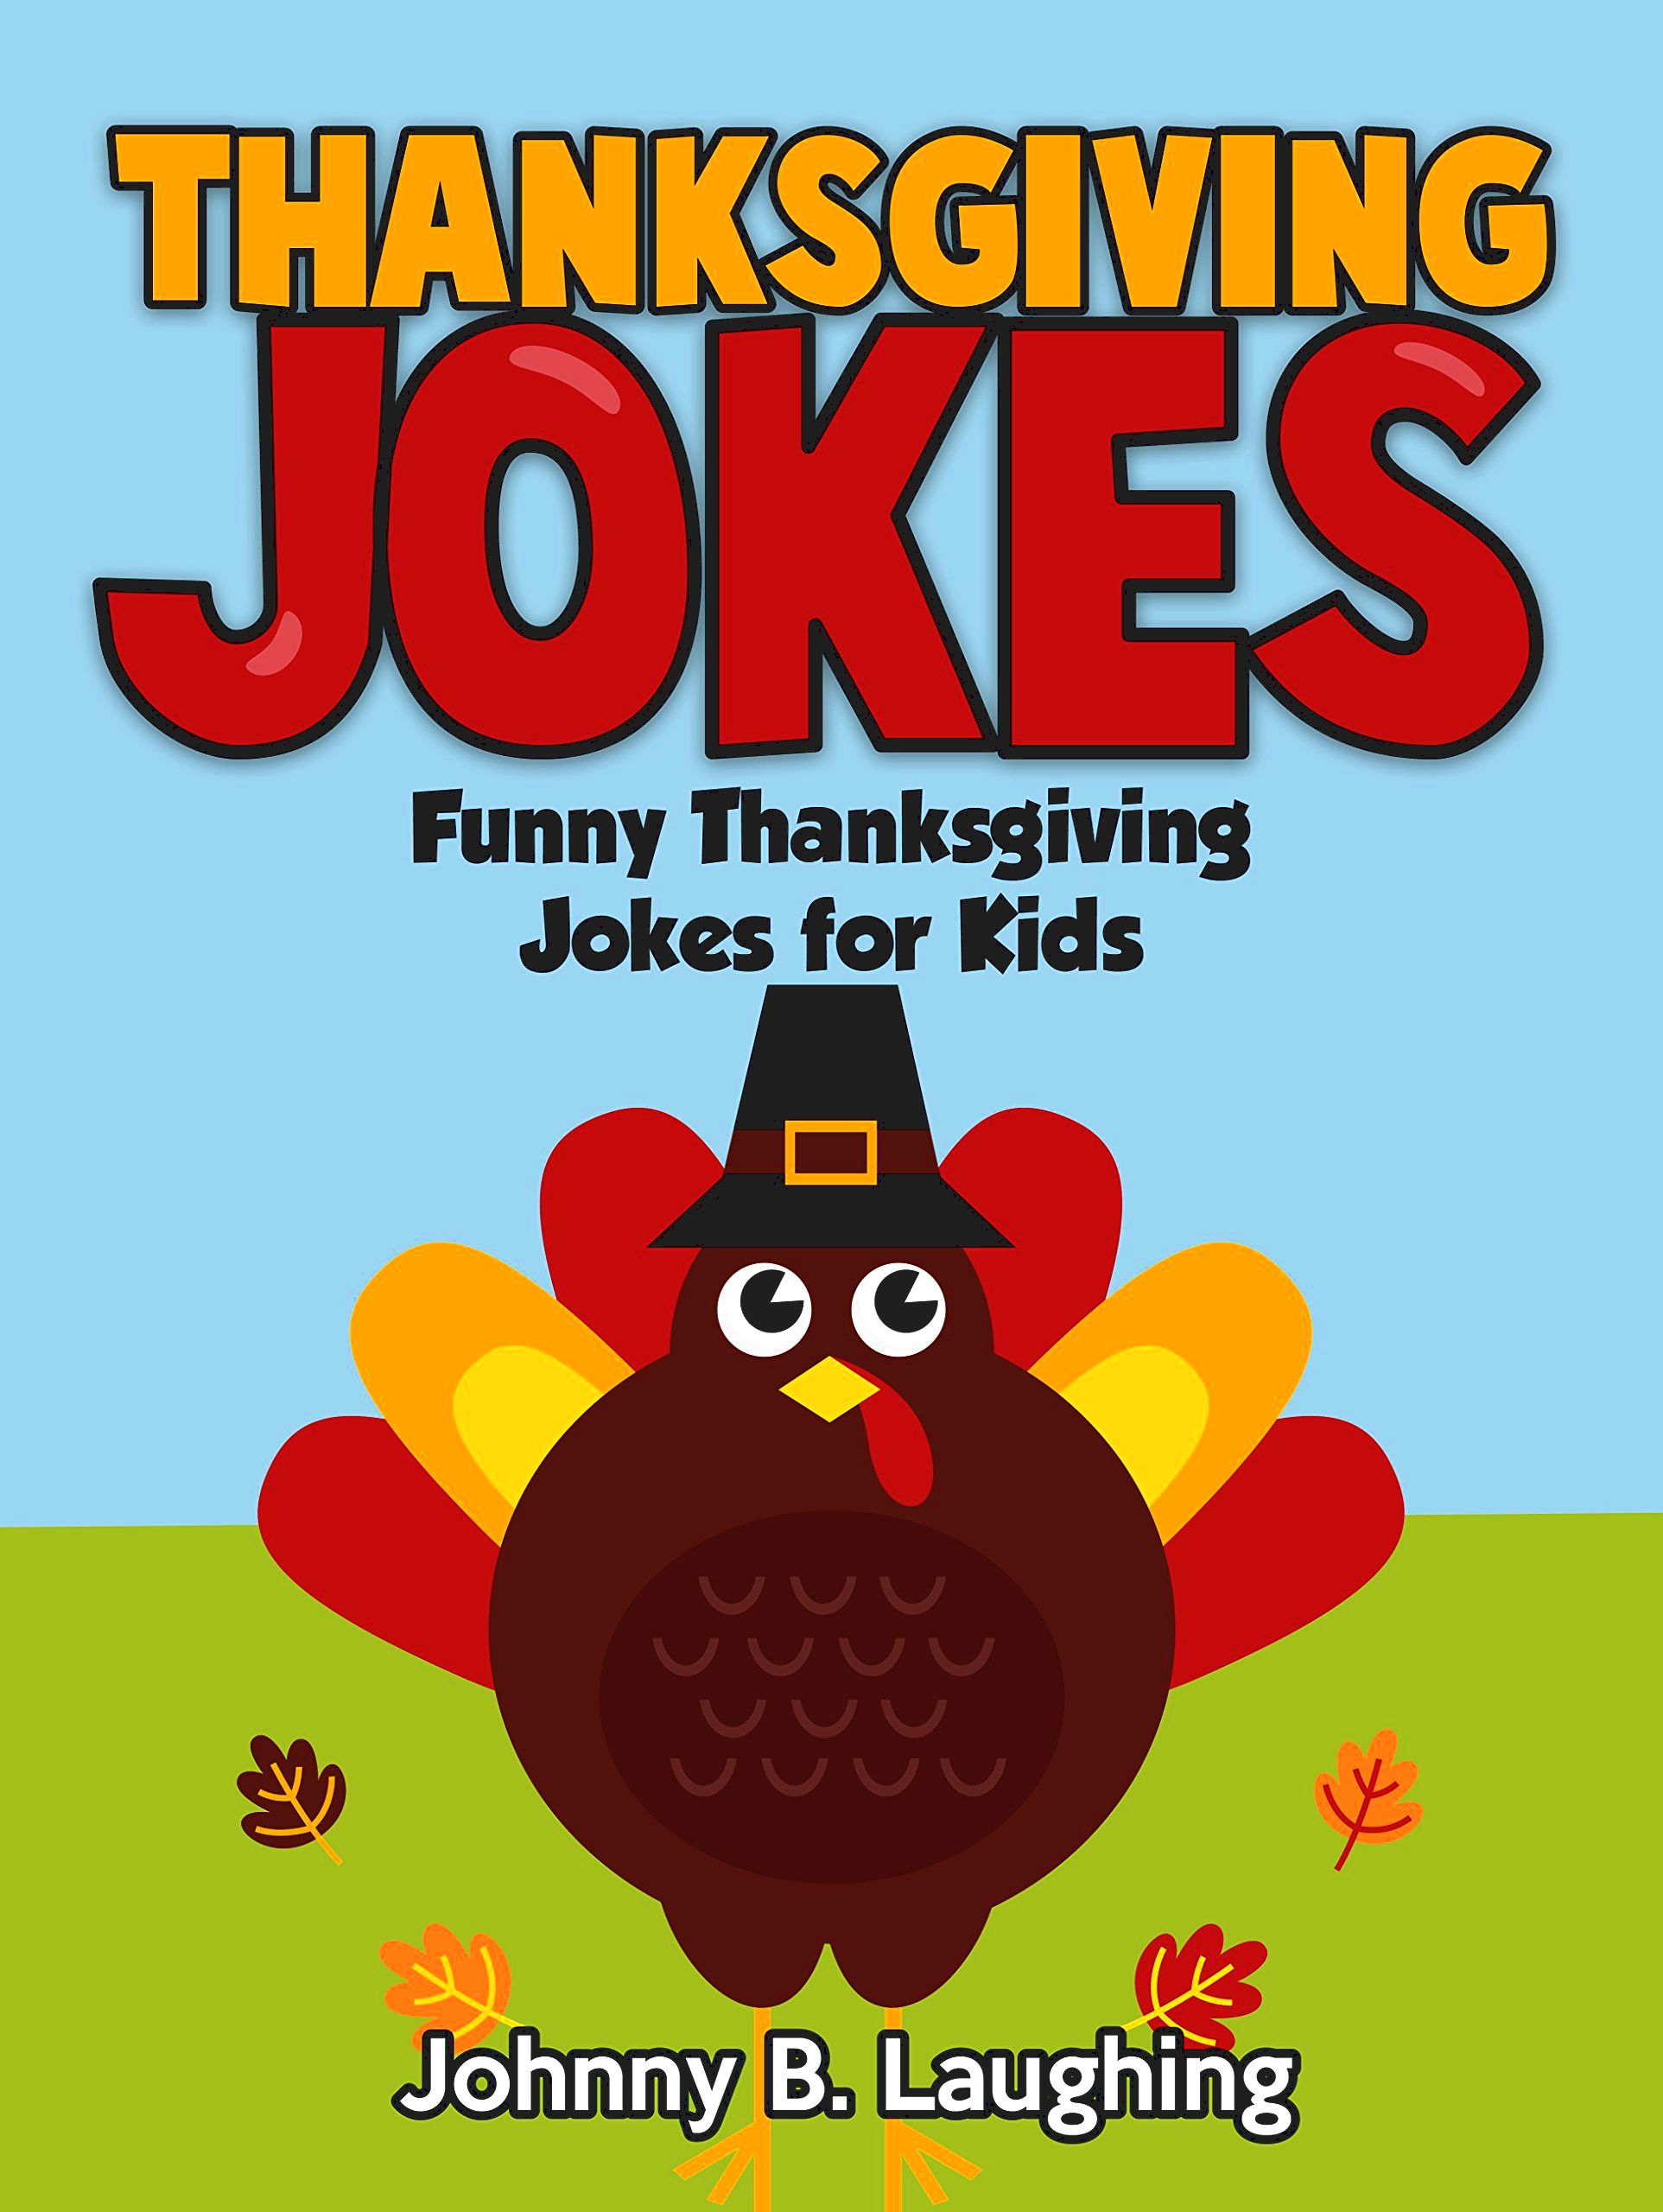 Funny thanksgiving jokes for kids and adults Body liners, knock knock exactly what does